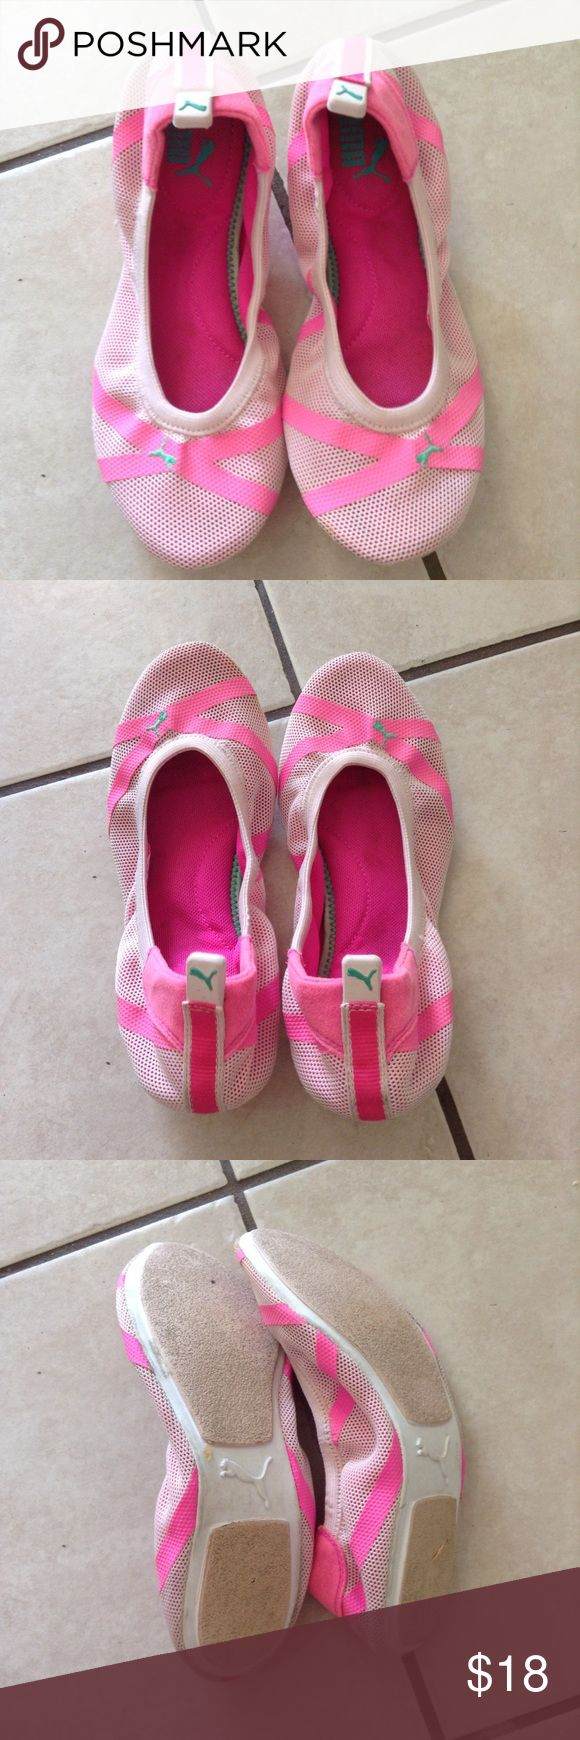 Puma flat shoes size 6 Need some cleaning, very good condition Puma Shoes Flats & Loafers